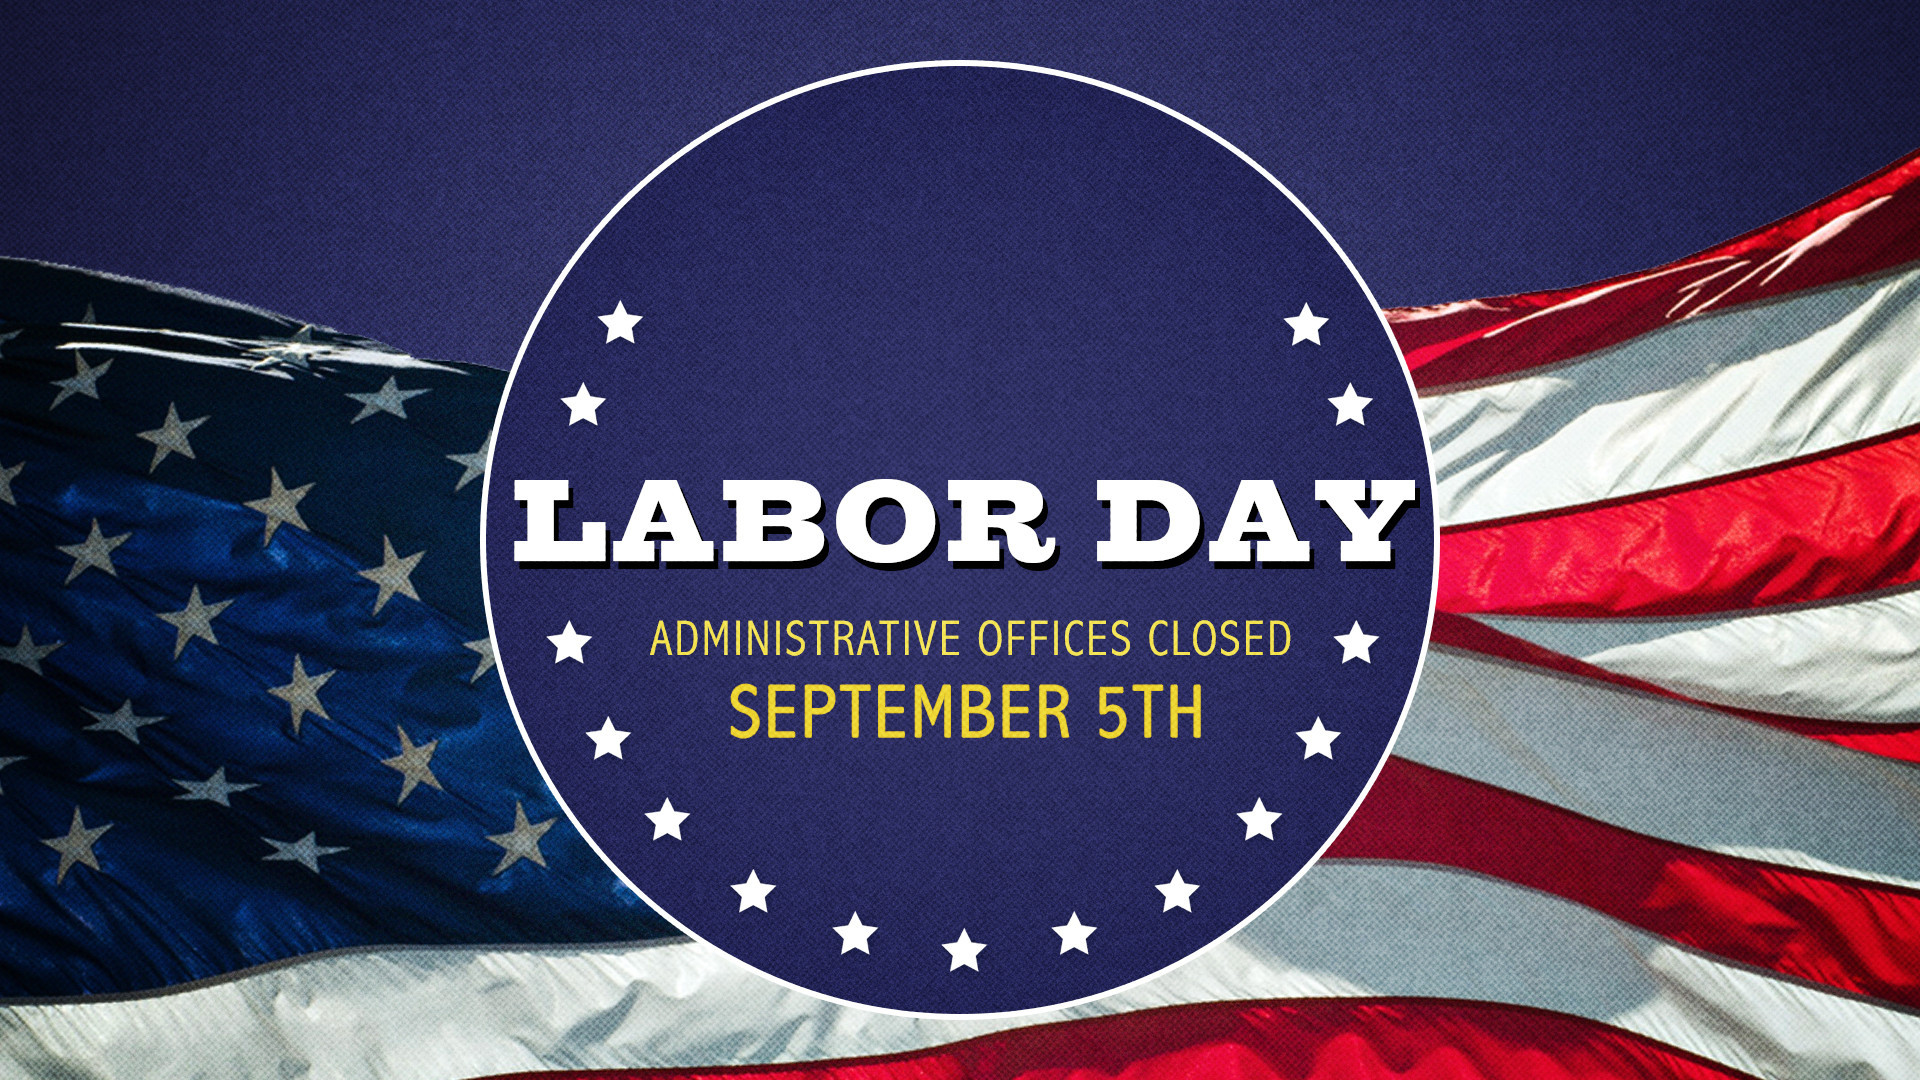 Res: 1920x1080, Labor Day Wallpapers 17 - 1920 X 1080